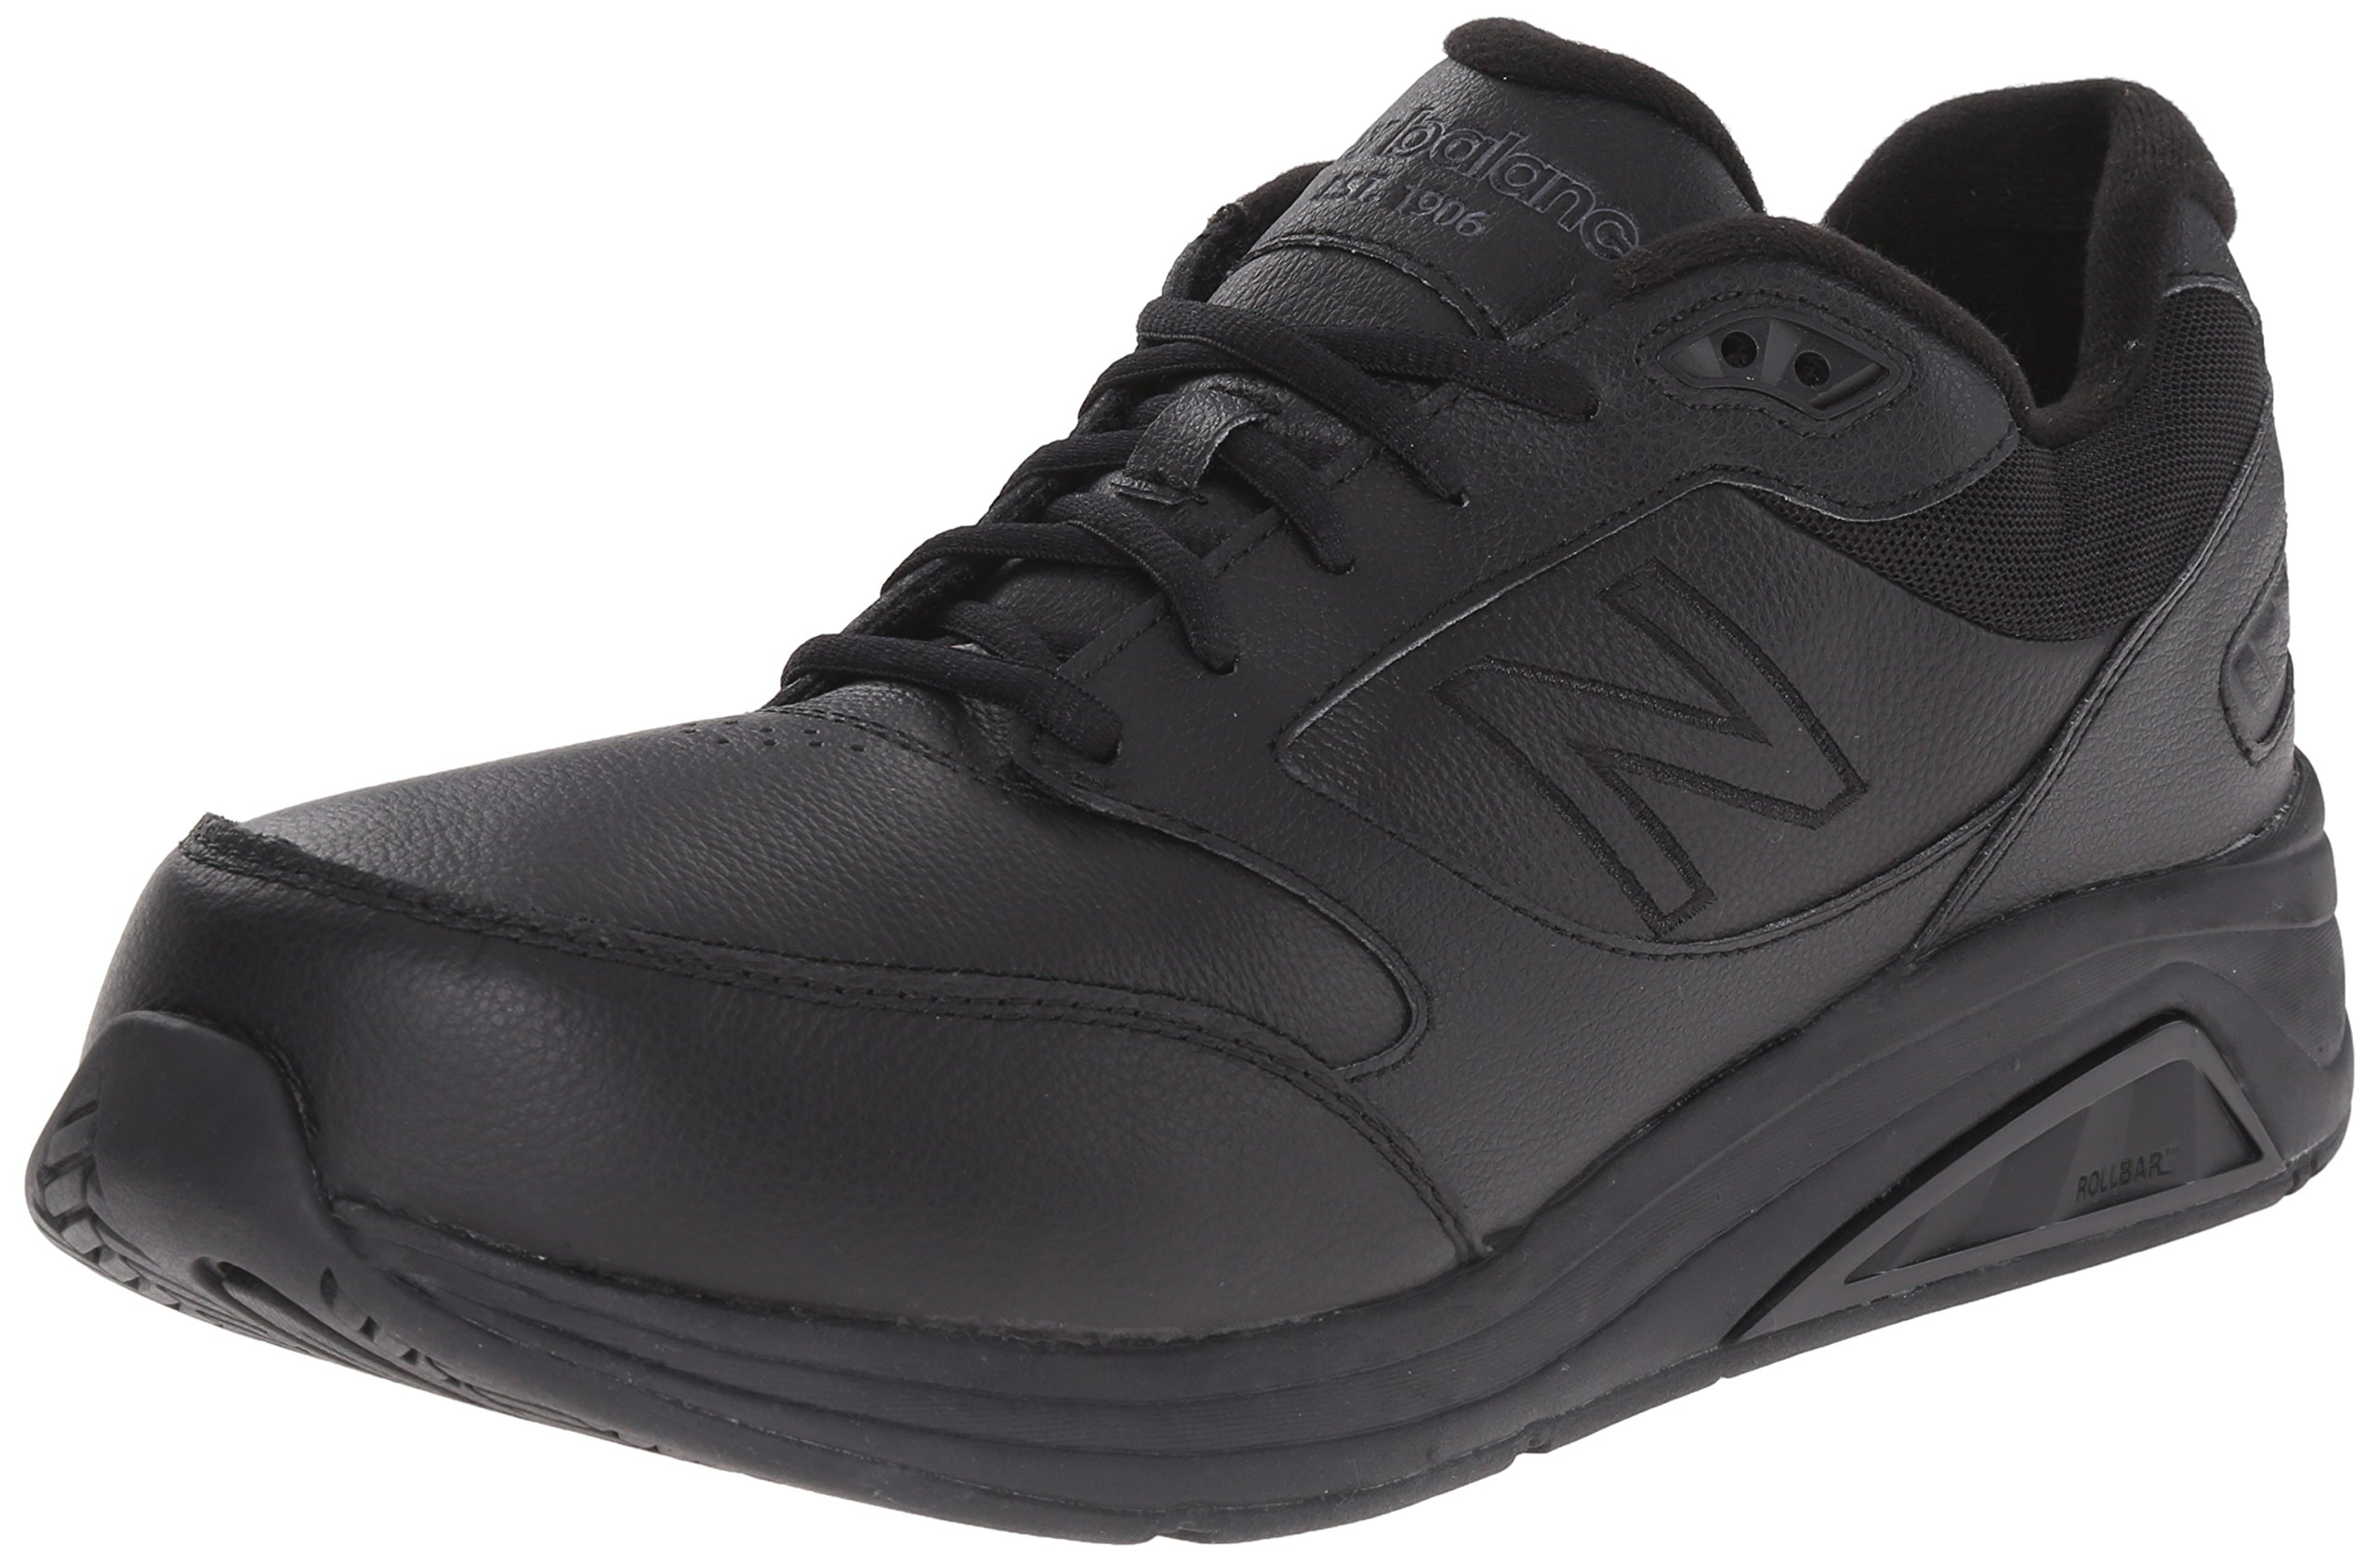 New Balance Men's MW928V2 Walking Shoe,Black,7.5 D US by New Balance